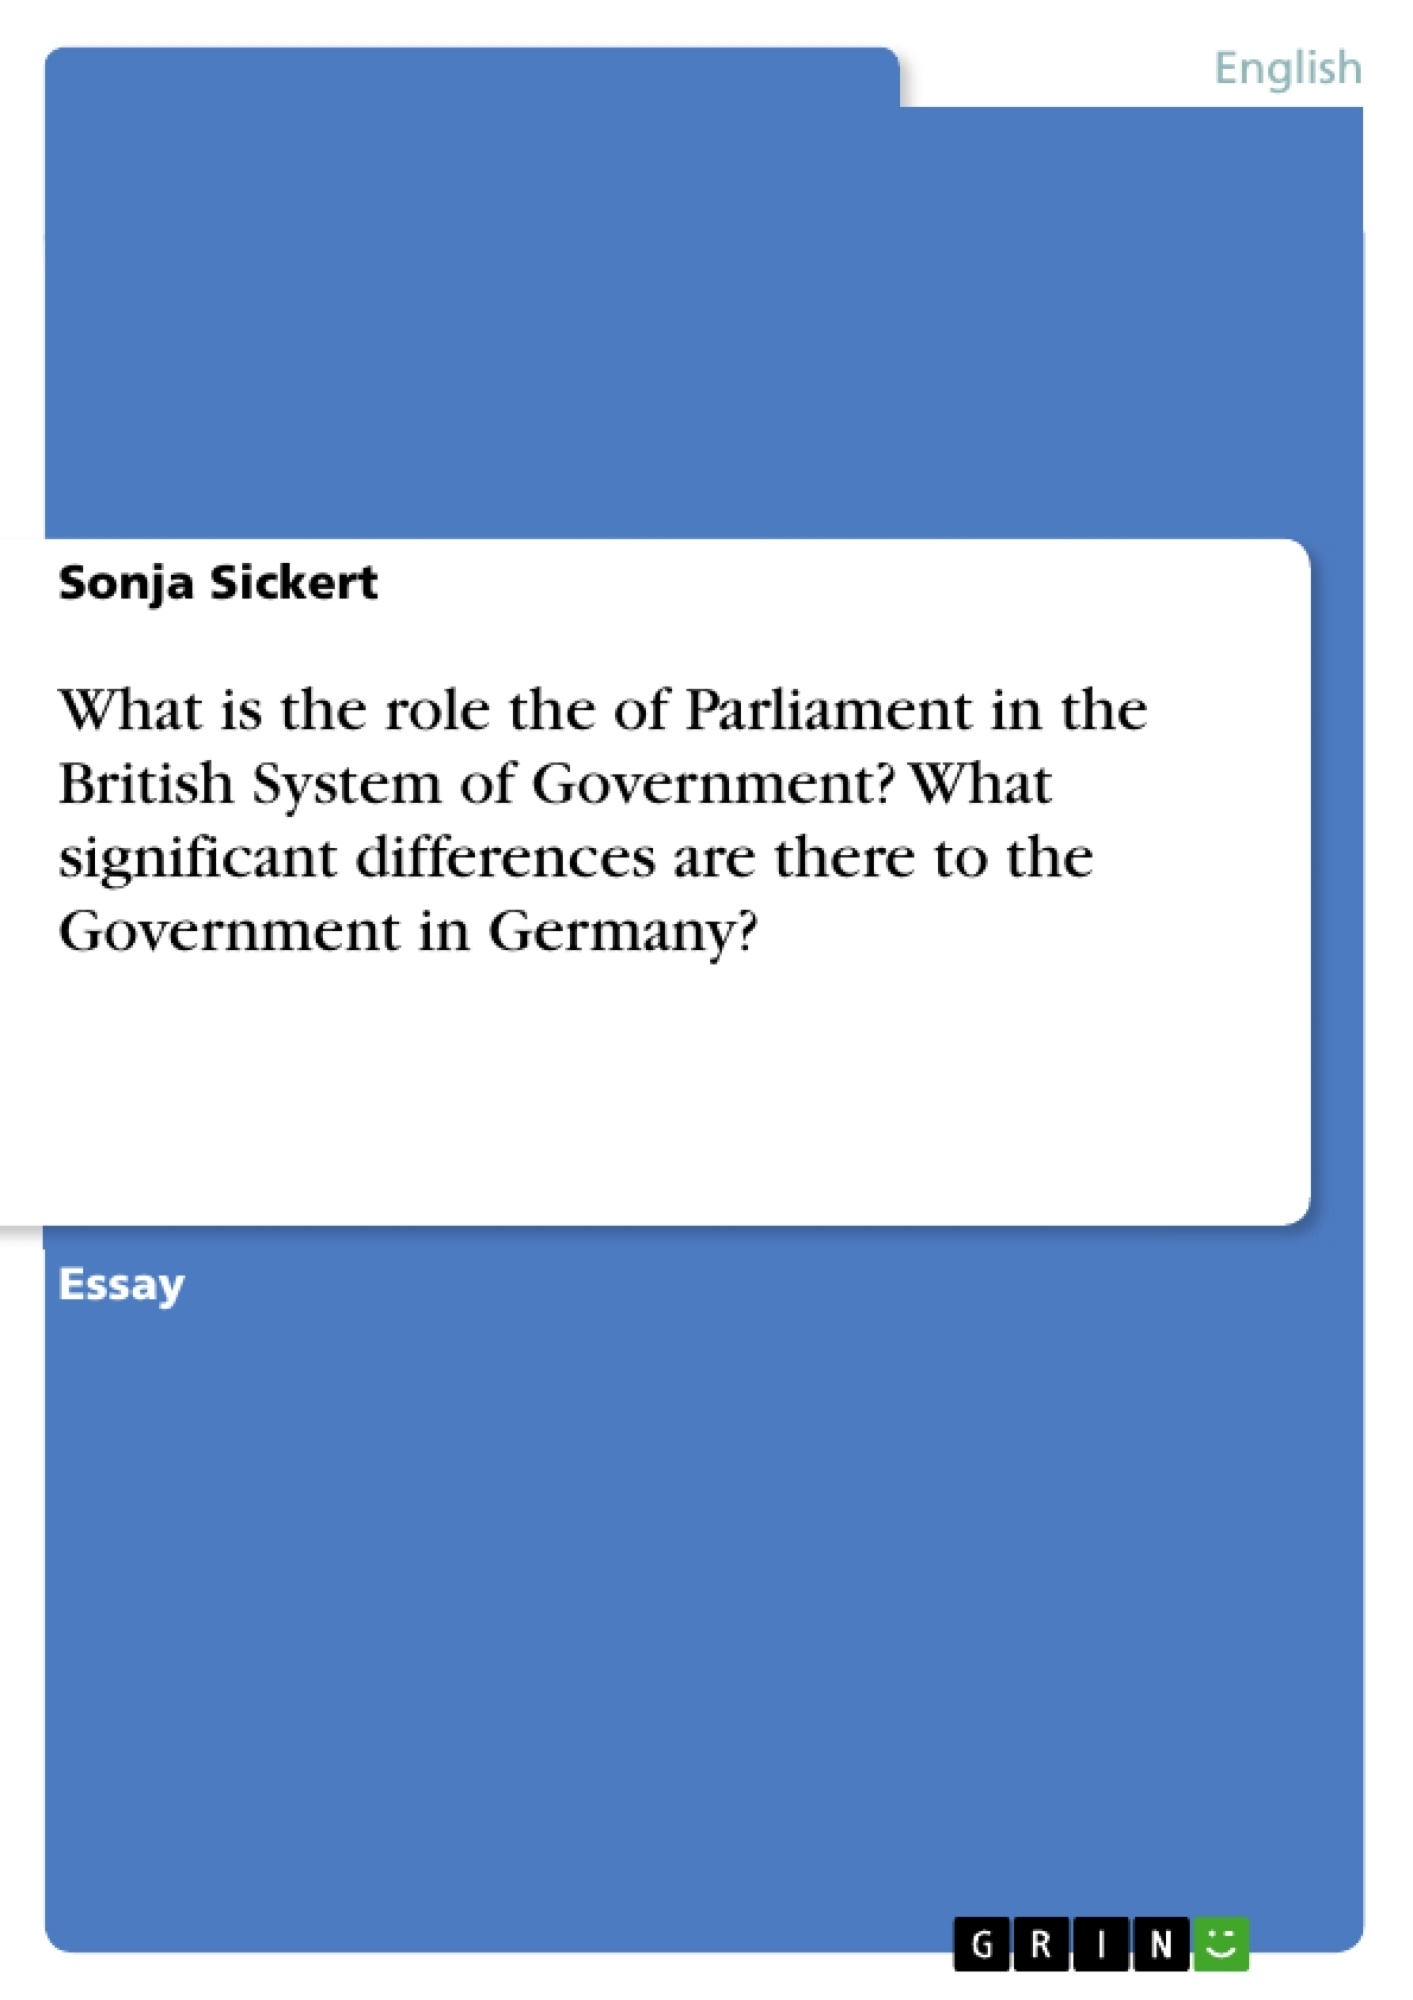 Title: What is the role the of Parliament in the British System of Government? What significant differences are there to the Government in Germany?